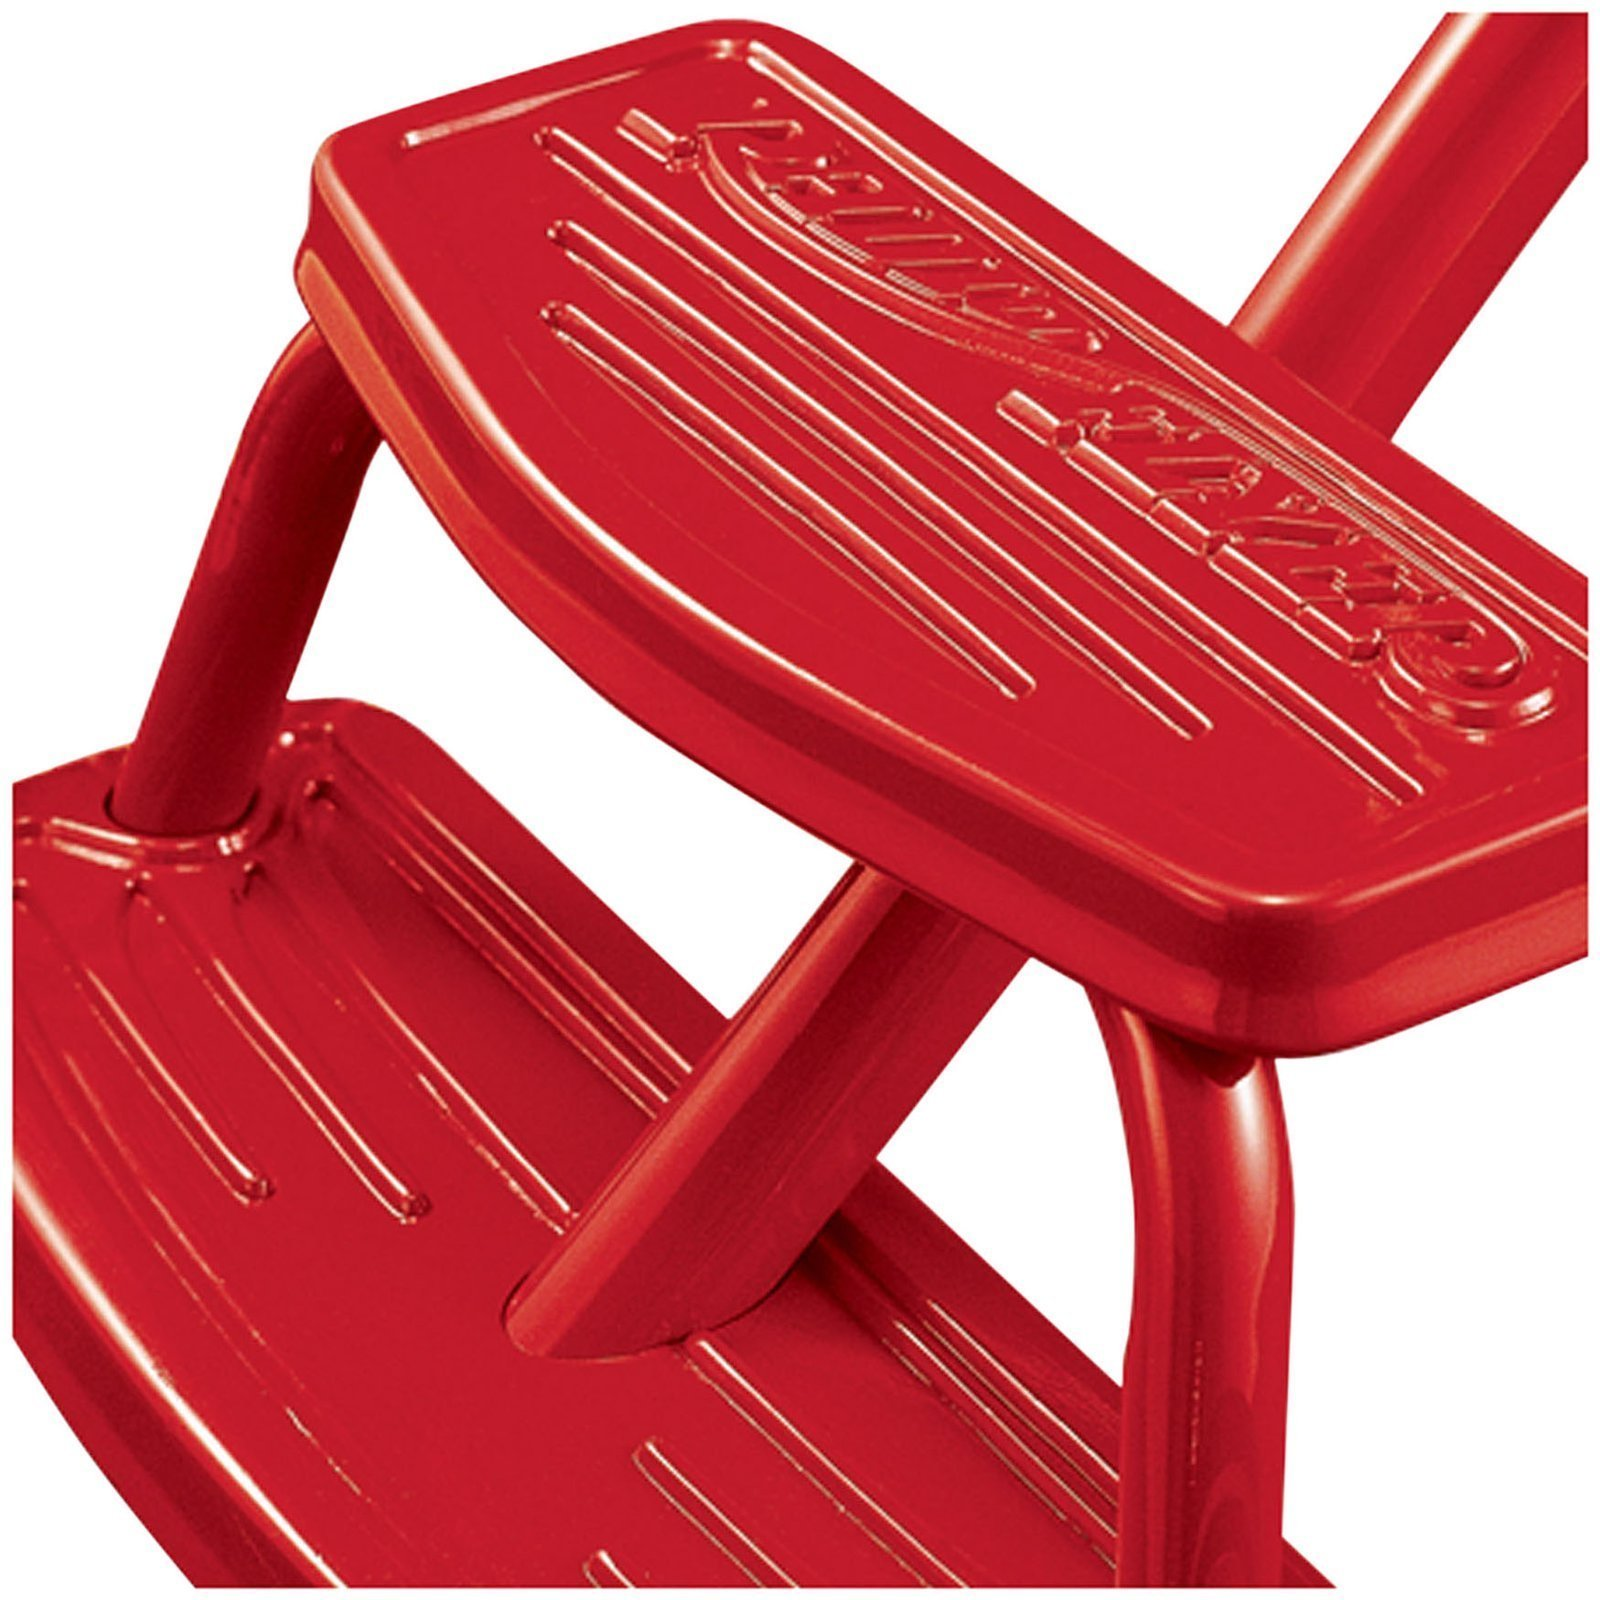 Radio Flyer Classic Red Dual Deck Tricycle by Radio Flyer (Image #3)